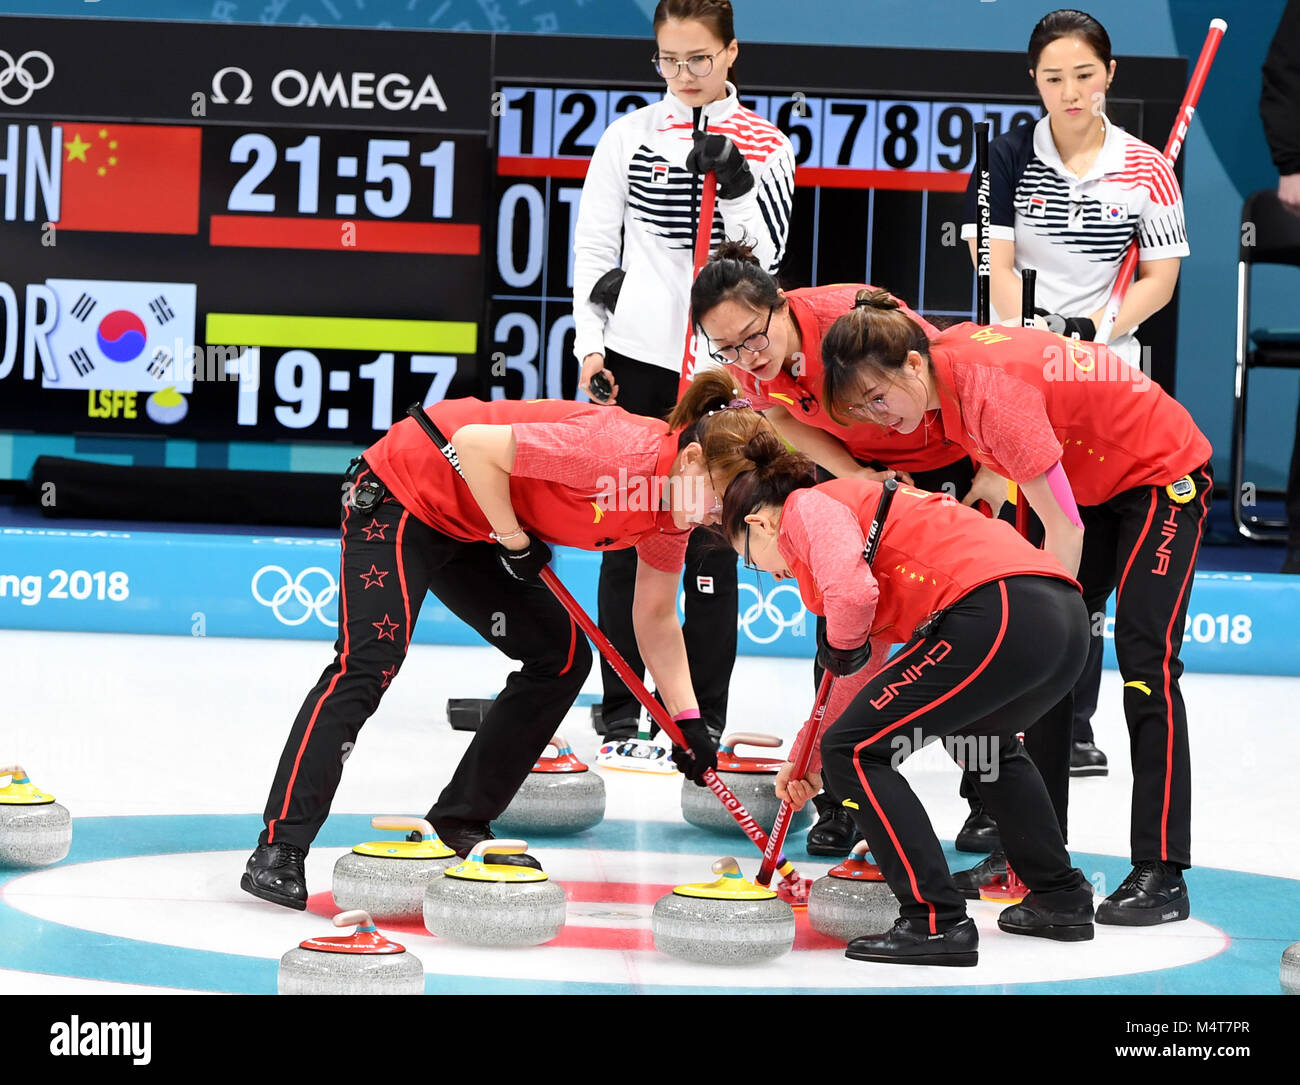 Pyeongchang, South Korea. 18th Feb, 2018. Chinese athletes compete during women round robin event of curling against - Stock Image